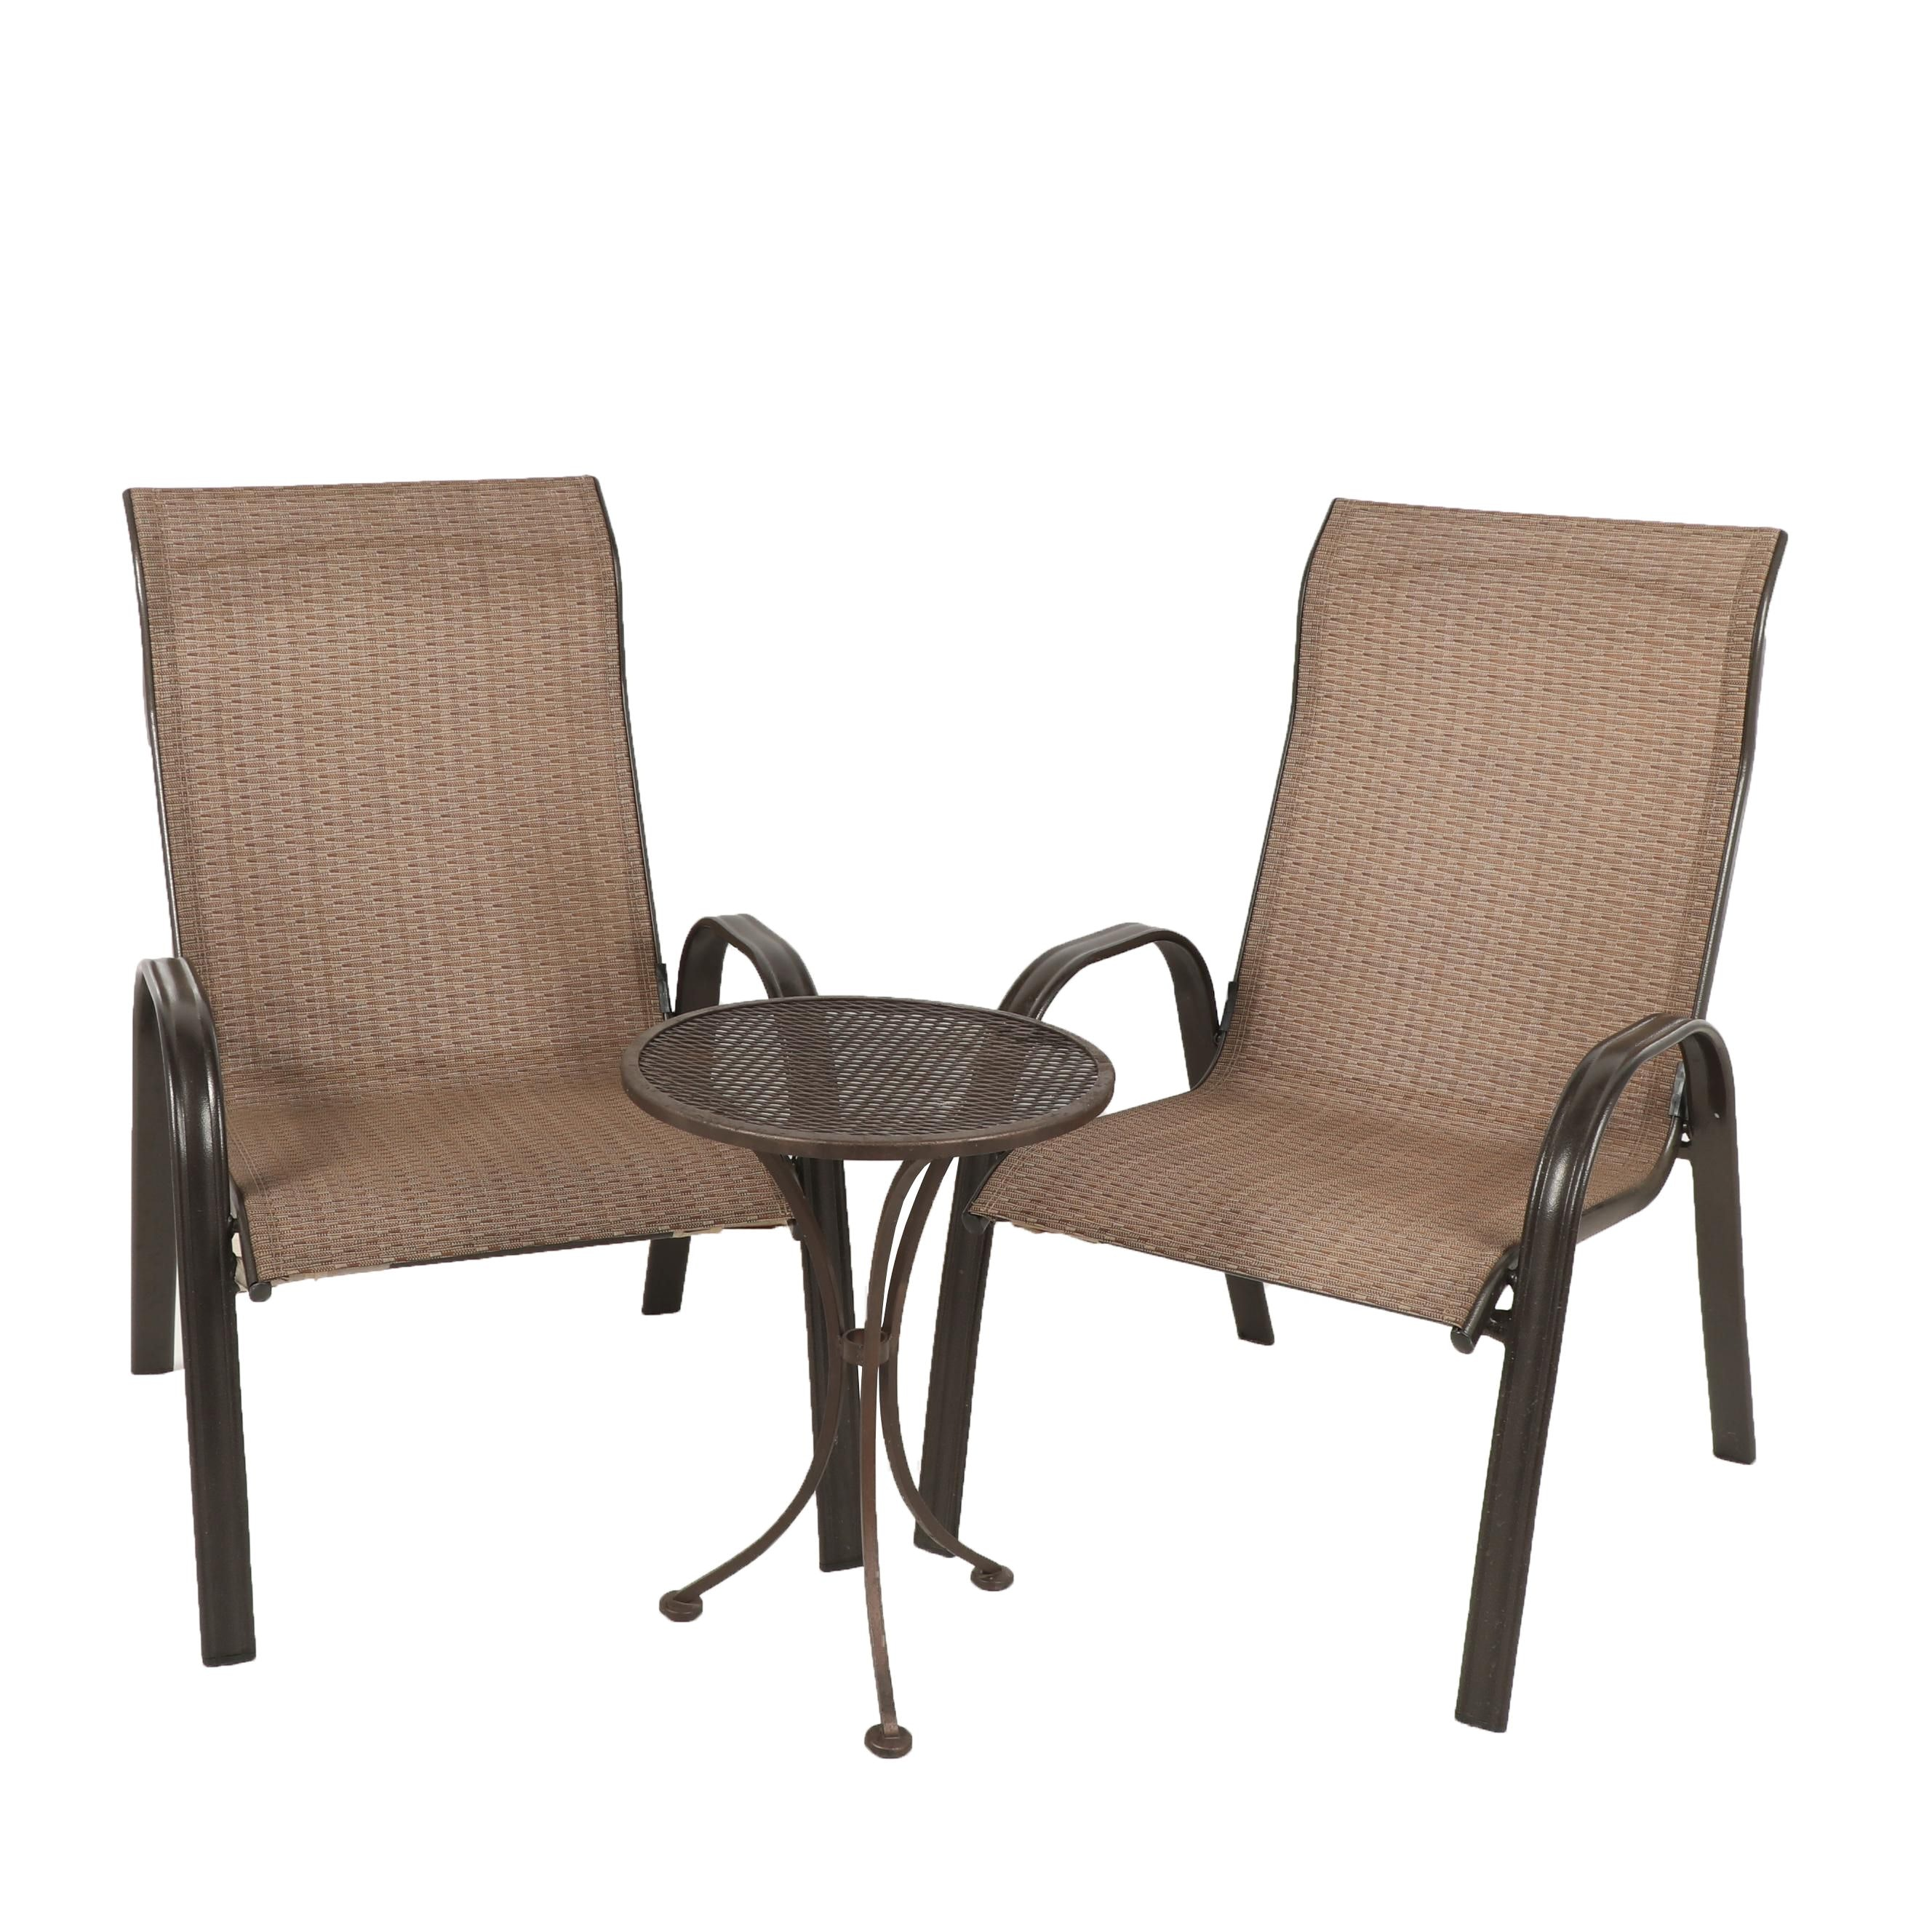 Pair of Patio Chairs with Accent Table